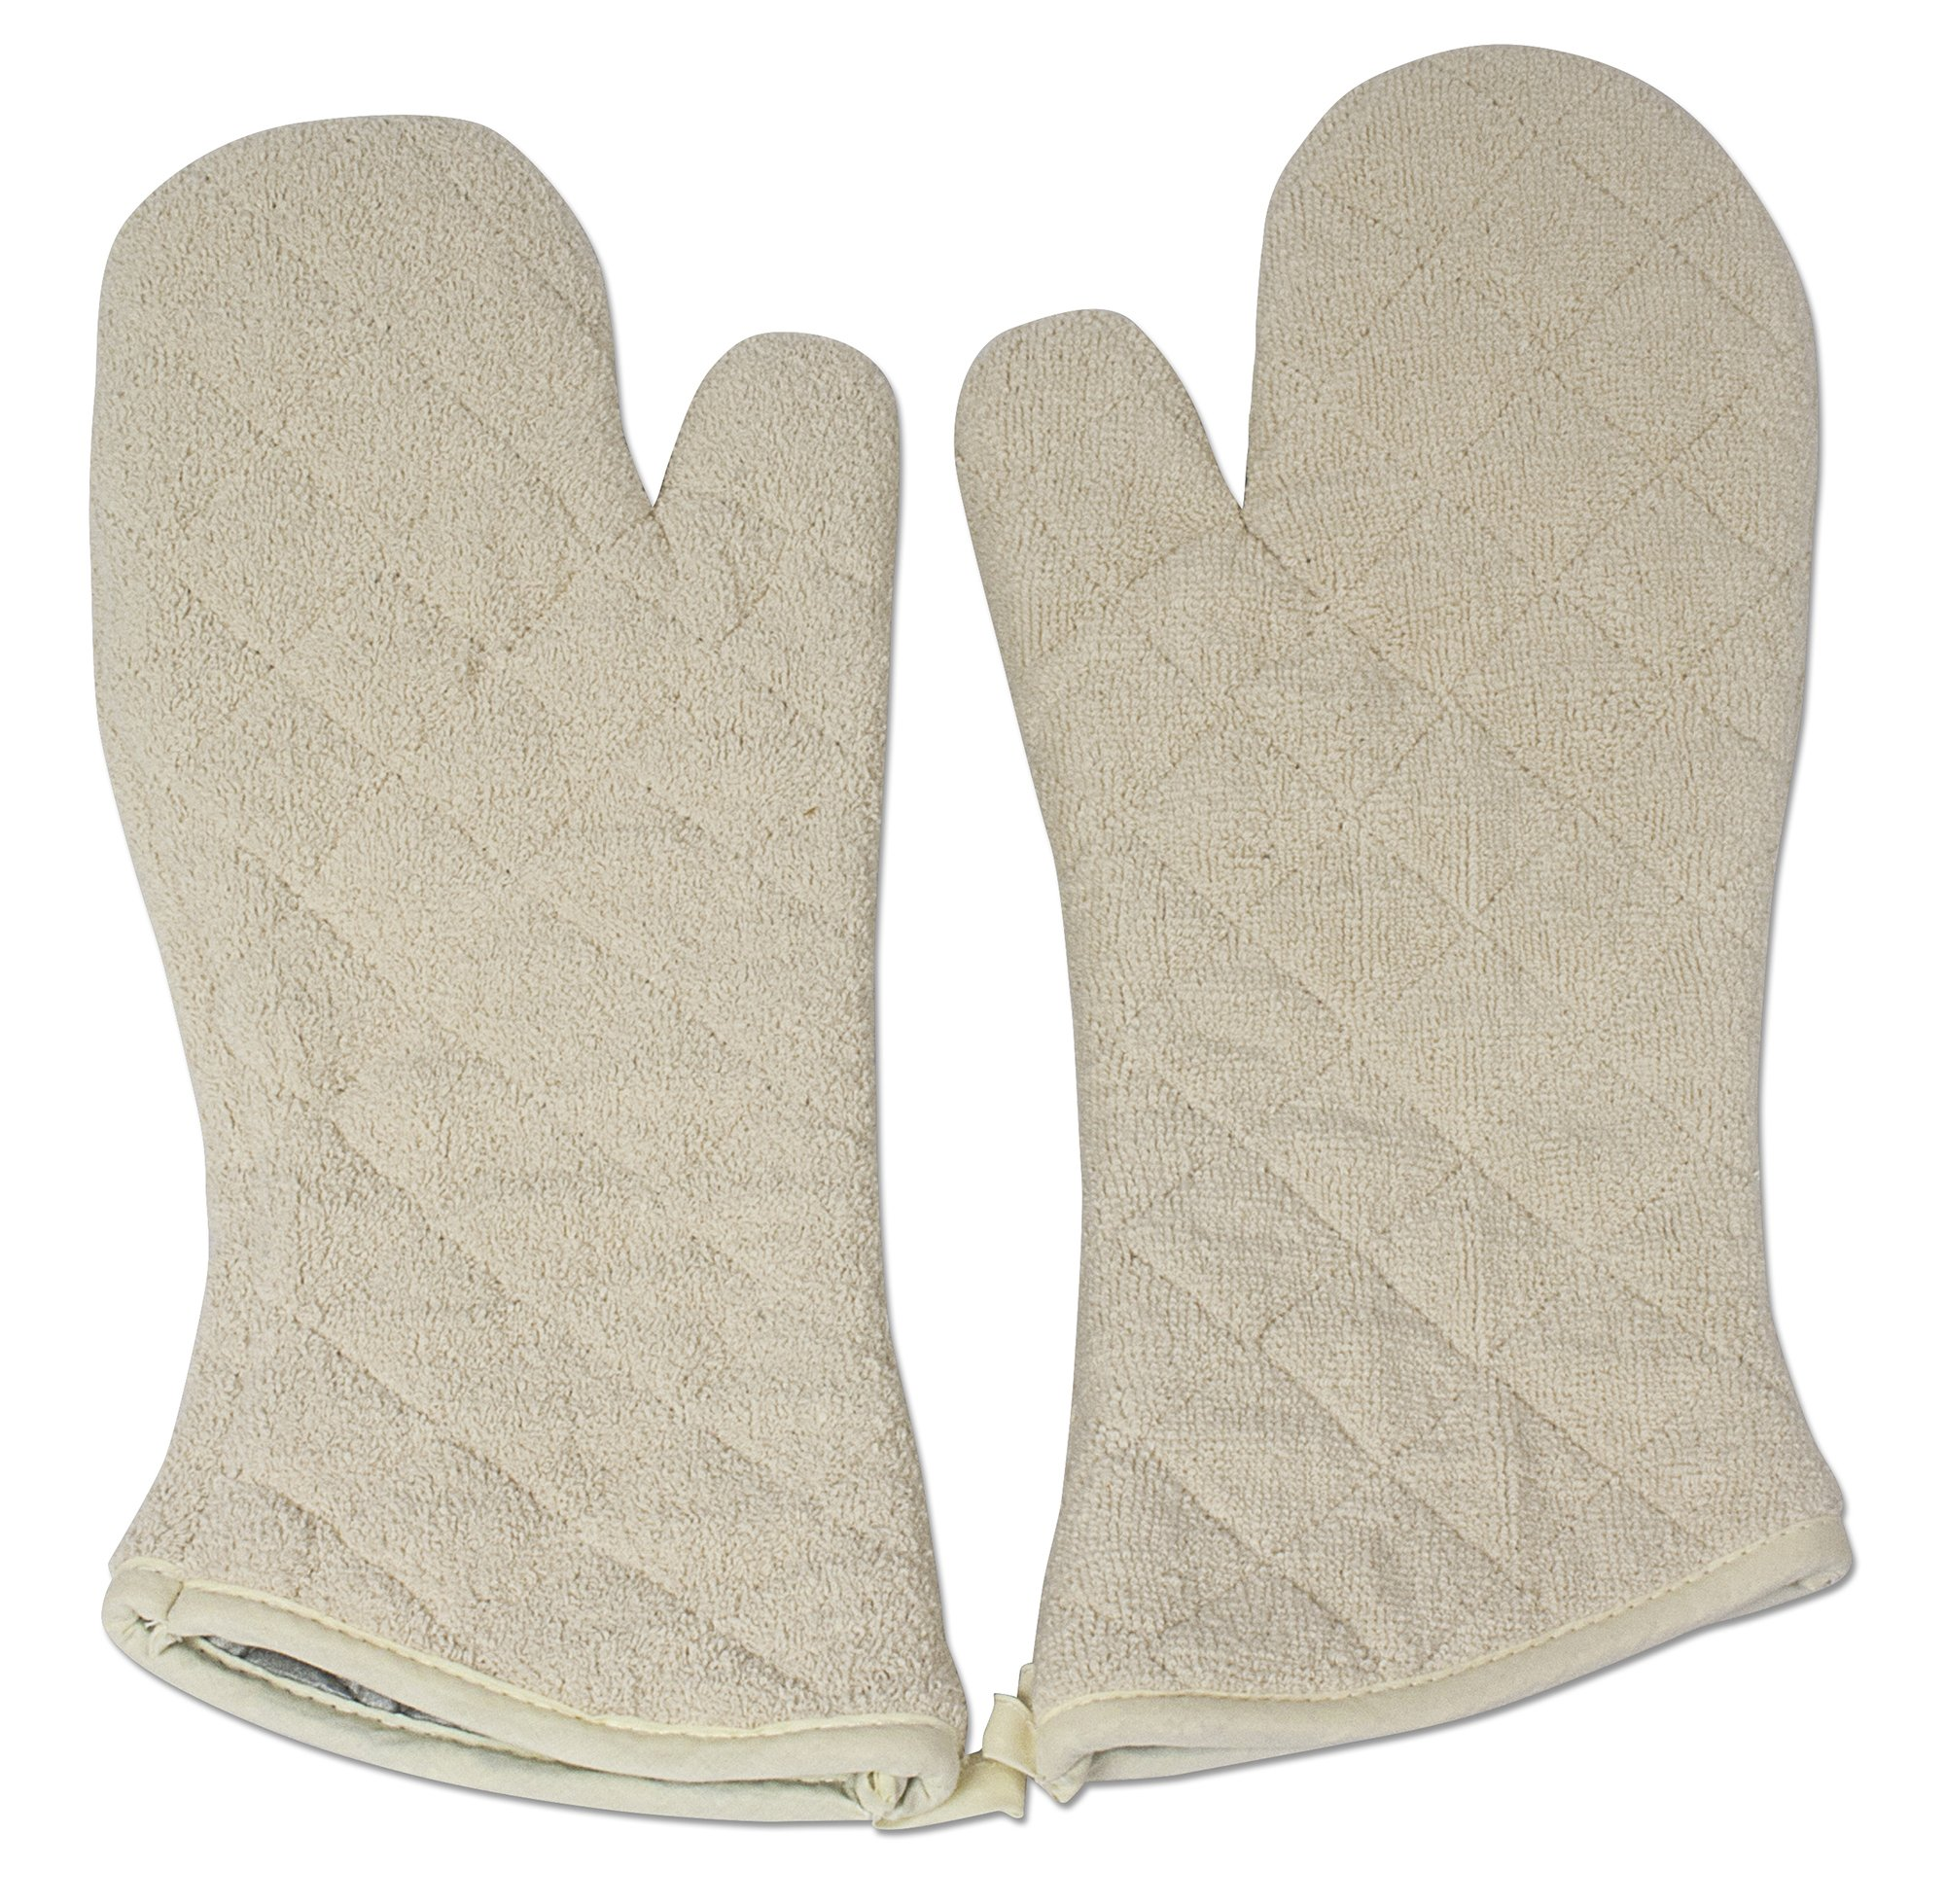 Nouvelle Legende Cotton Quilted Terry Oven Mitts | Heat Resistant Long Lasting | Commercial Grade Machine Washable | 17 Inches Set of 2